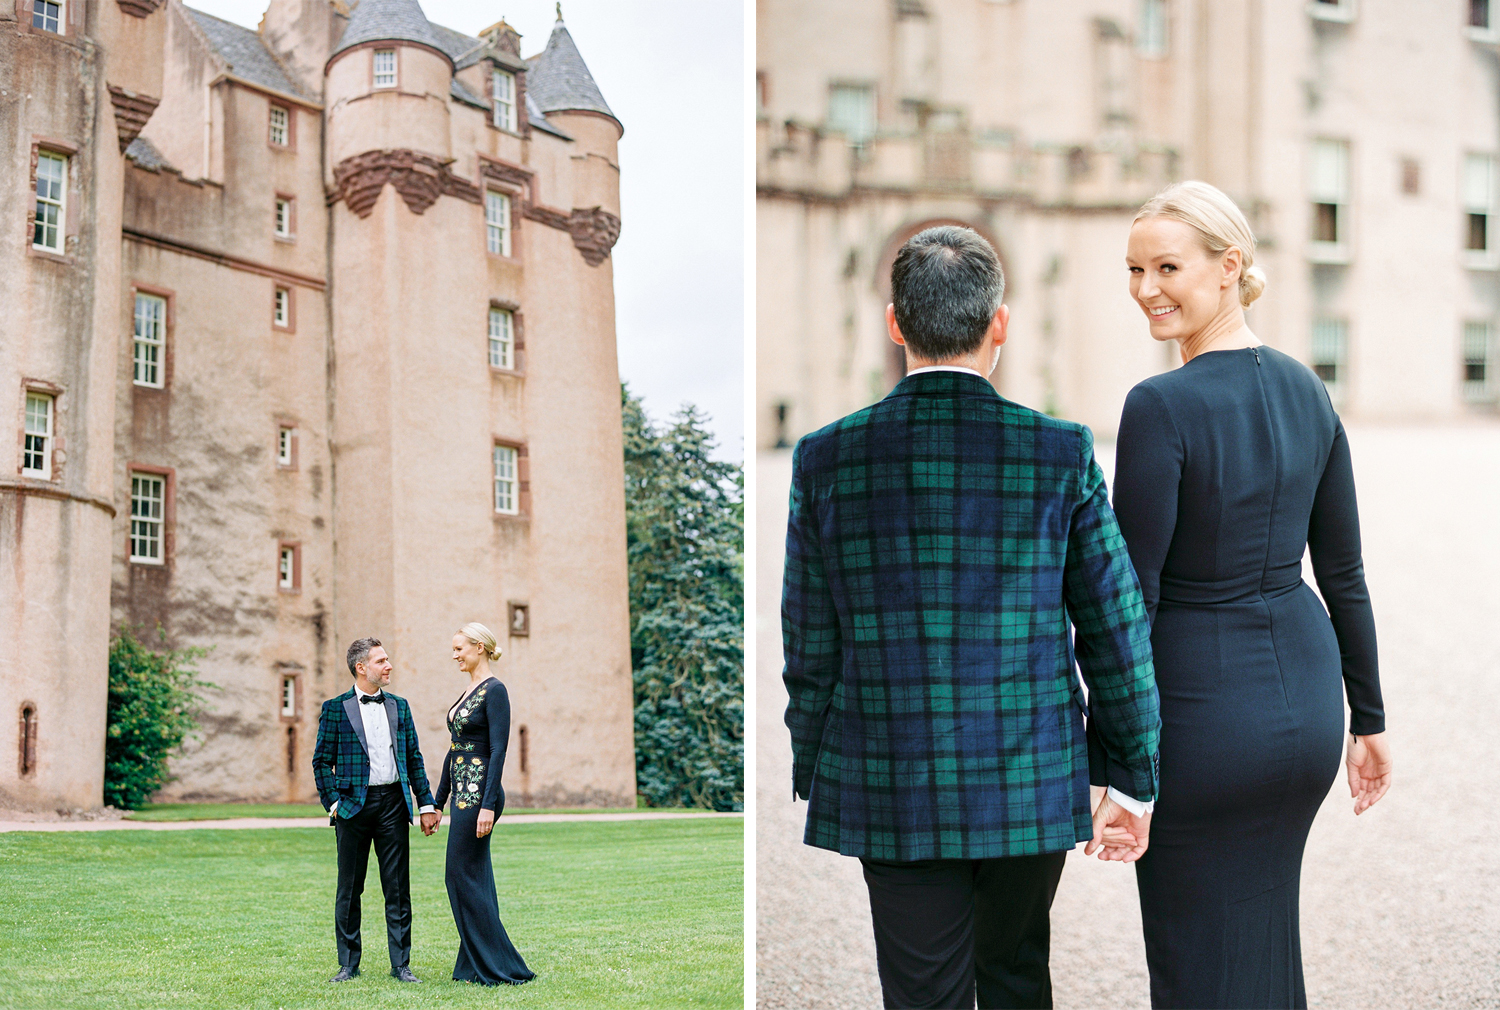 Some portraits of the couple outside the Castle.